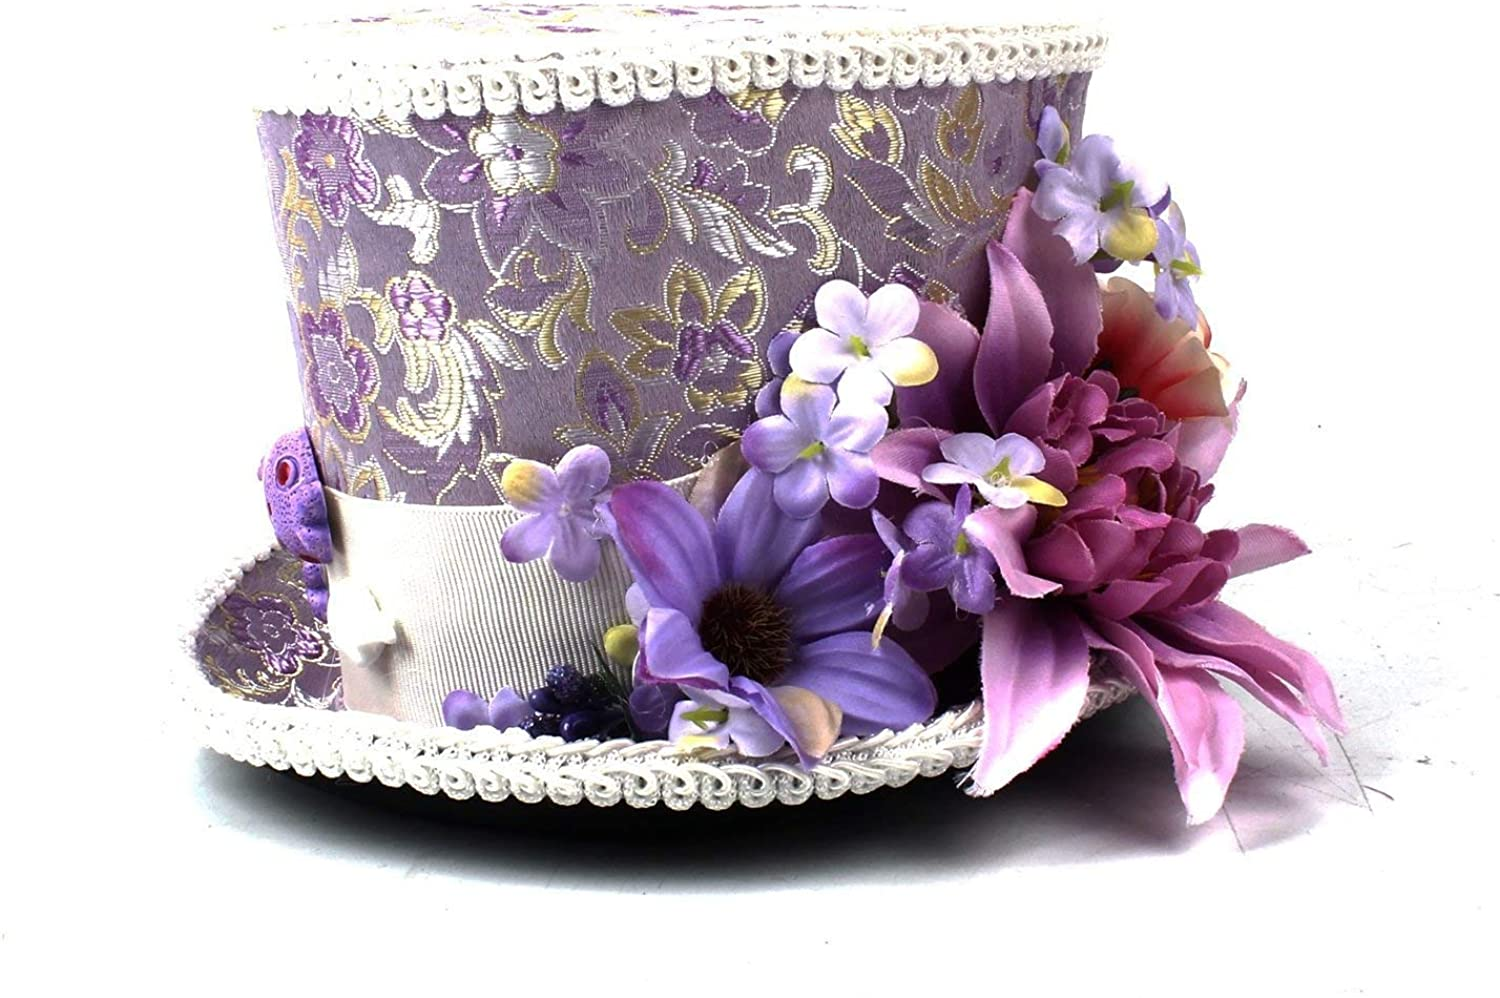 Fashion Warm Comfortable Hats for Women Kentucky Derby Mini Top Hat, Purple and Cream Flower Mini top hat, Alice in Wonderland, Mad Hatter Hat, Tea Party Wedding, Tea Party Hat